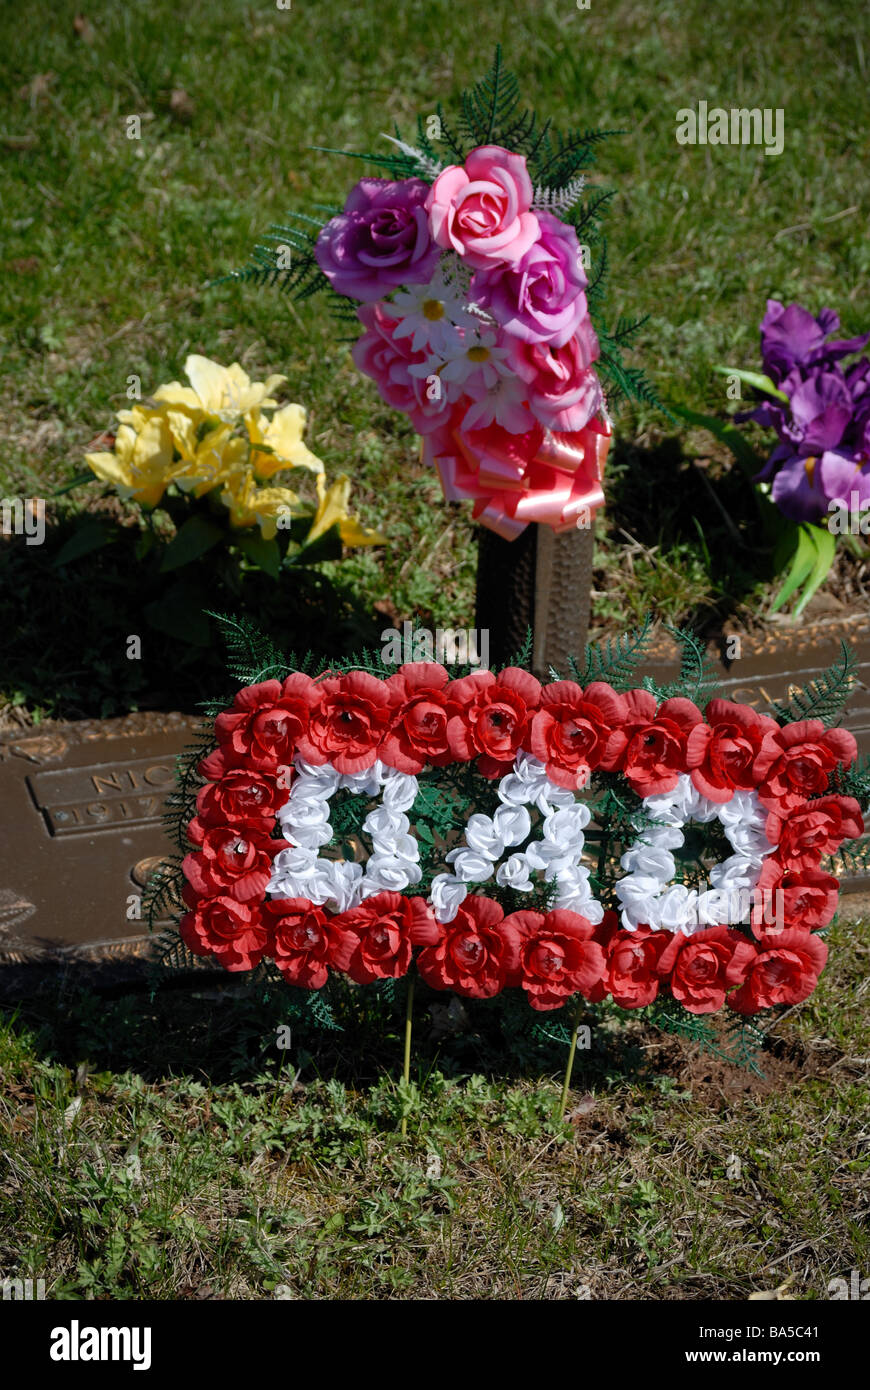 Flowers and a dad memento decorate a grave in allegheny cemetery flowers and a dad memento decorate a grave in allegheny cemetery pittsburgh pennsylvania izmirmasajfo